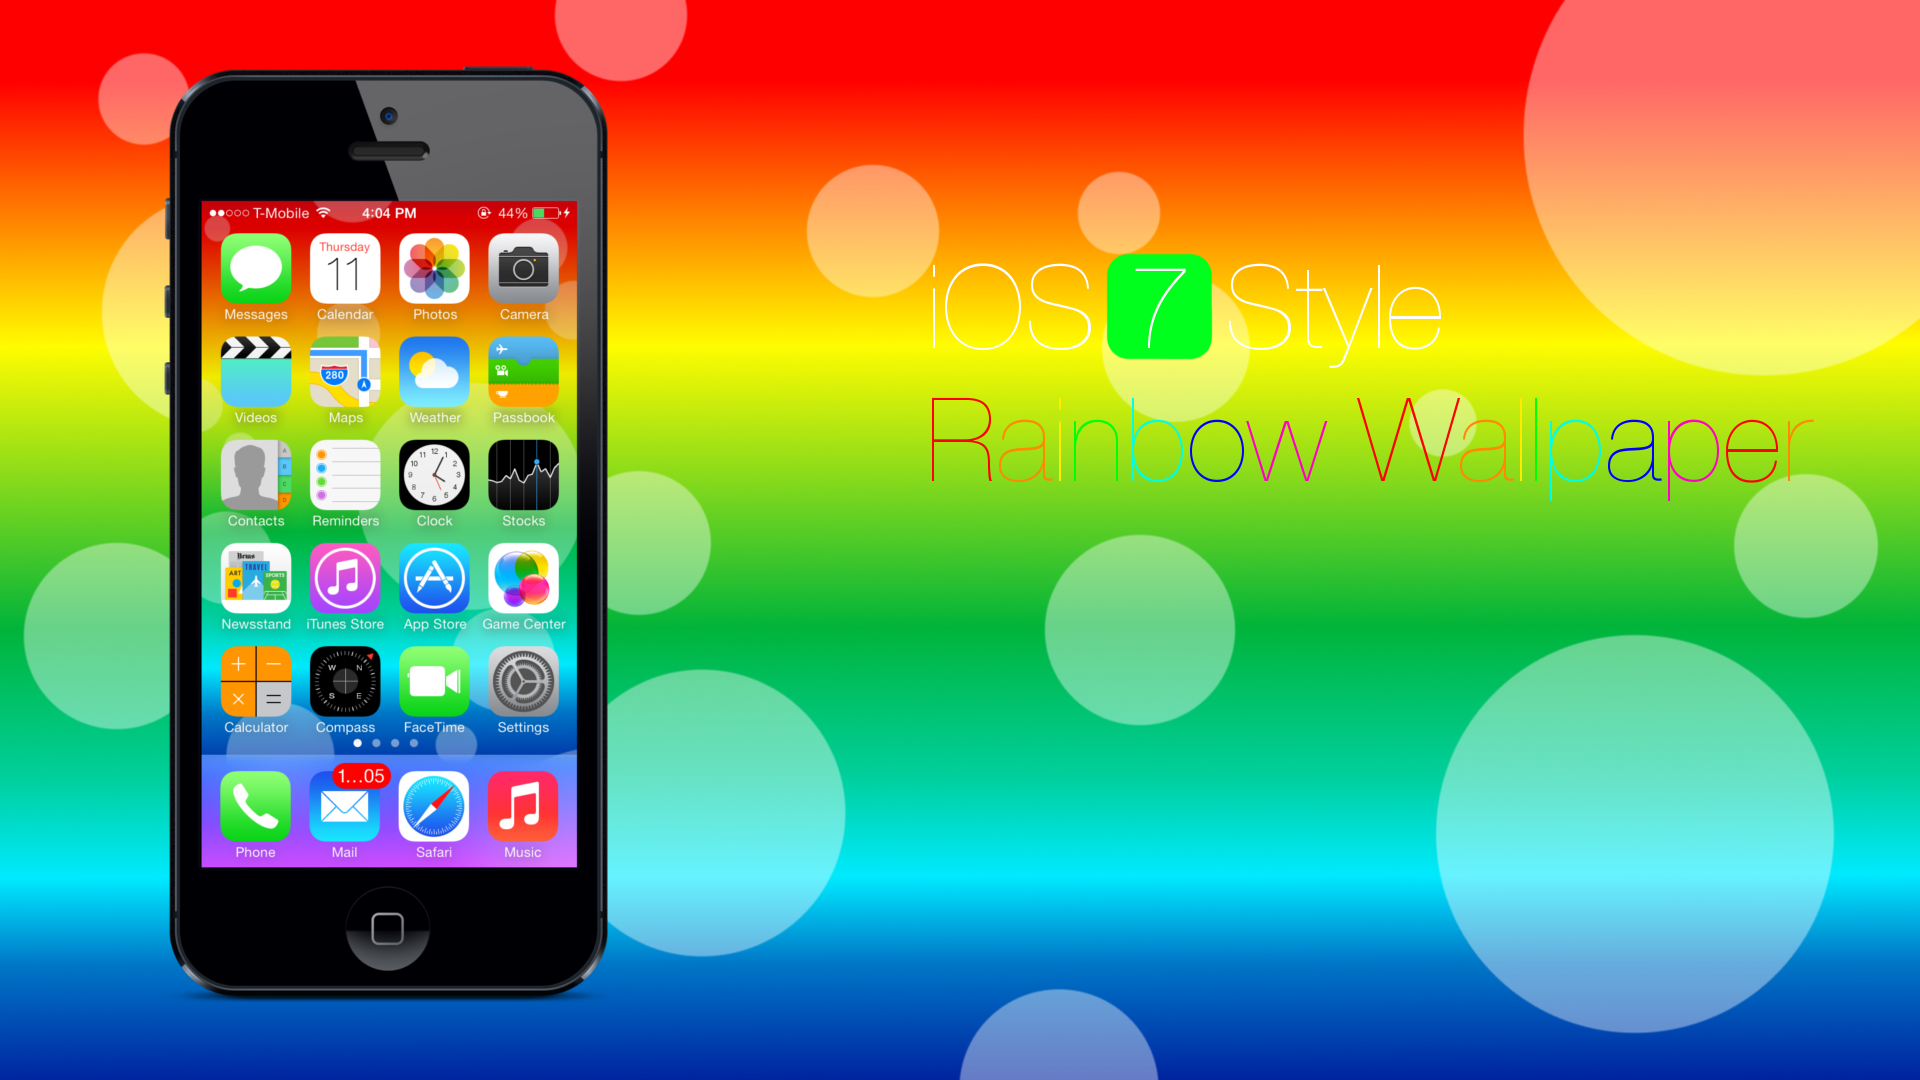 Ios 7 Iphone Wallpaper: IPhone 5 IOS 7 Wallpapers